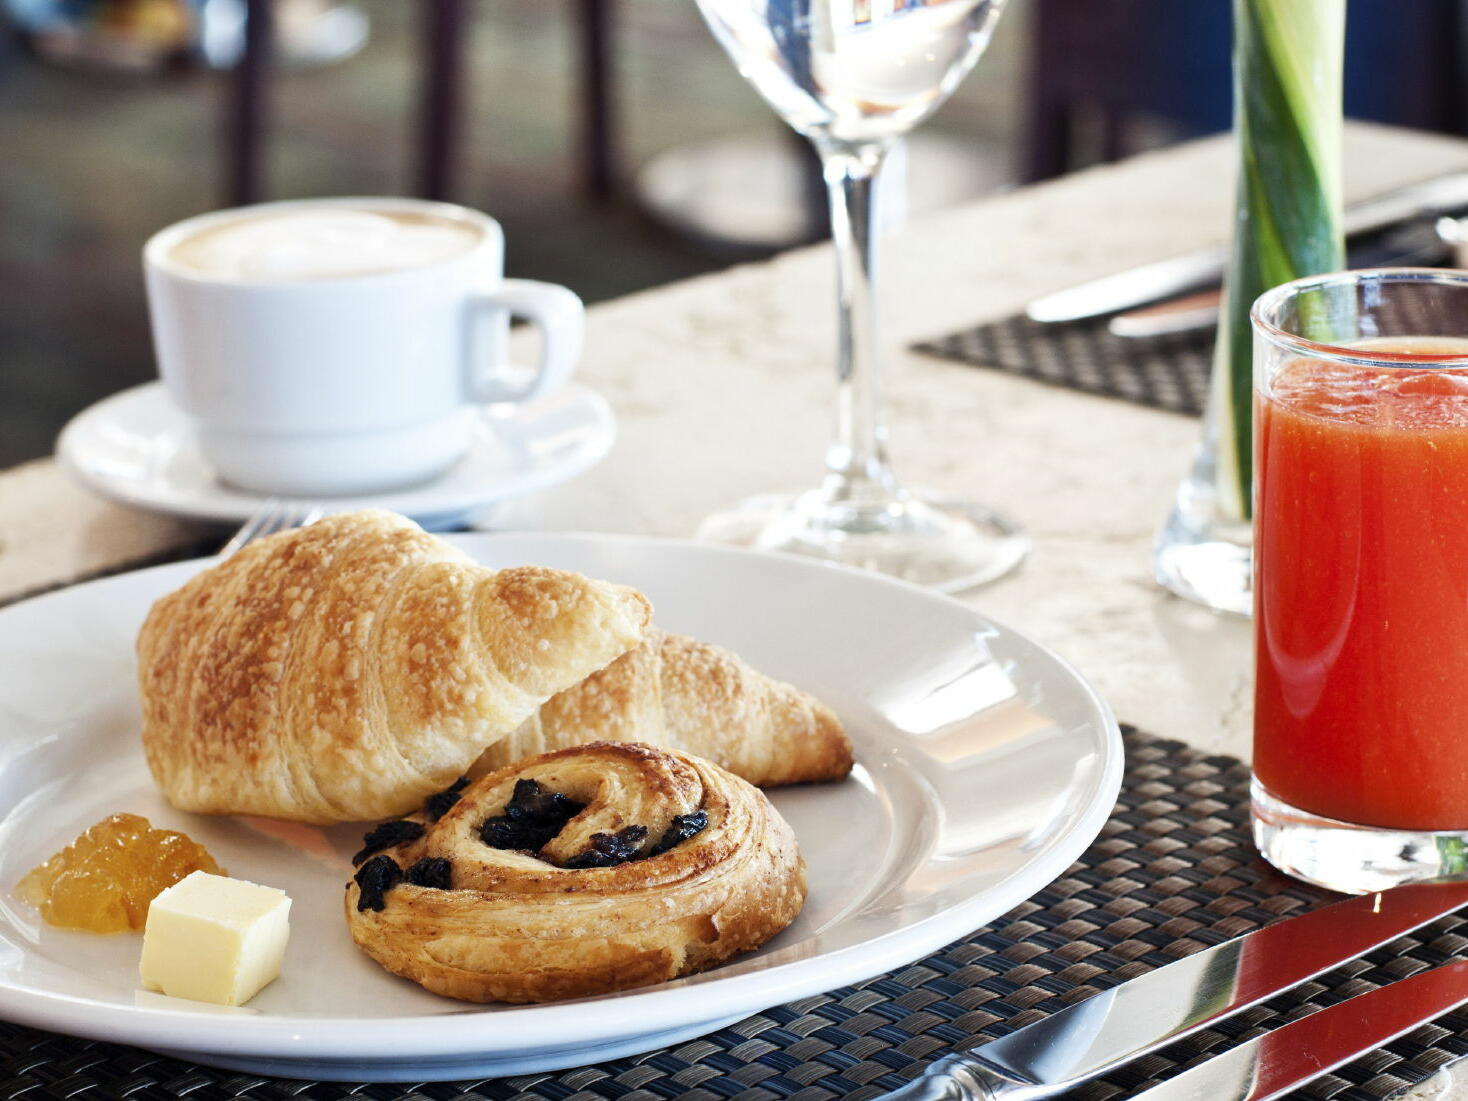 Croissant & pastries with juice served  in The Time New York